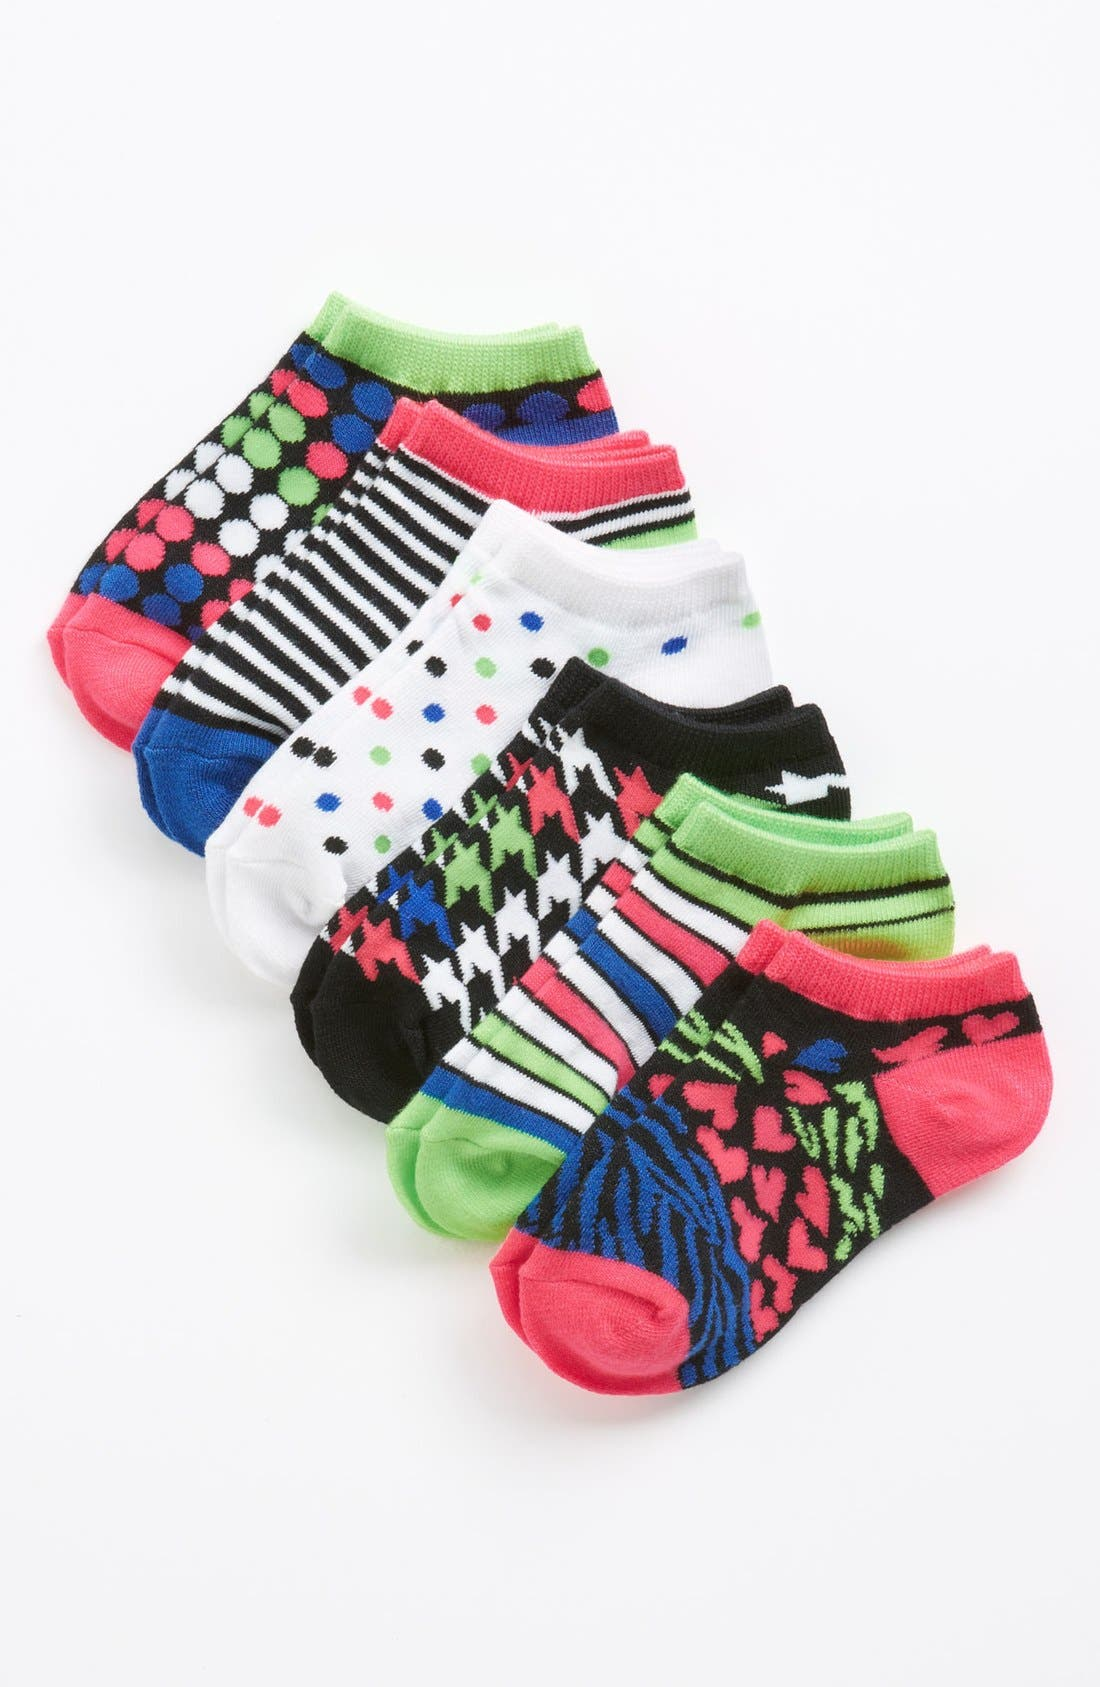 Alternate Image 1 Selected - Nordstrom 'Mod Mix' Low Cut Socks (6-Pack) (Toddler, Little Girls & Big Girls)